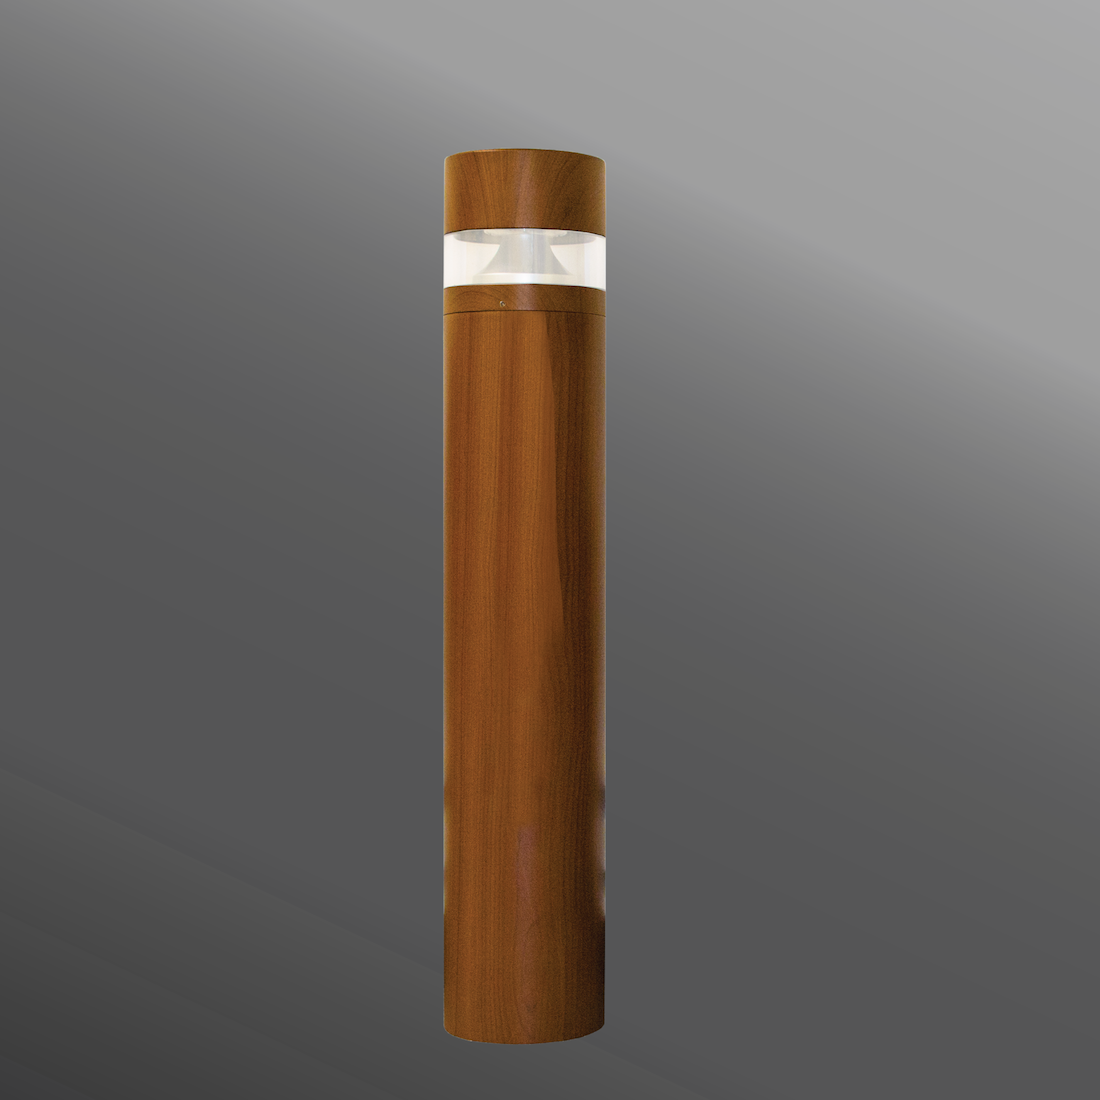 Click to view Ligman Lighting's Lightsoft Bollard - Woodland Series (model ULH-10XXX).